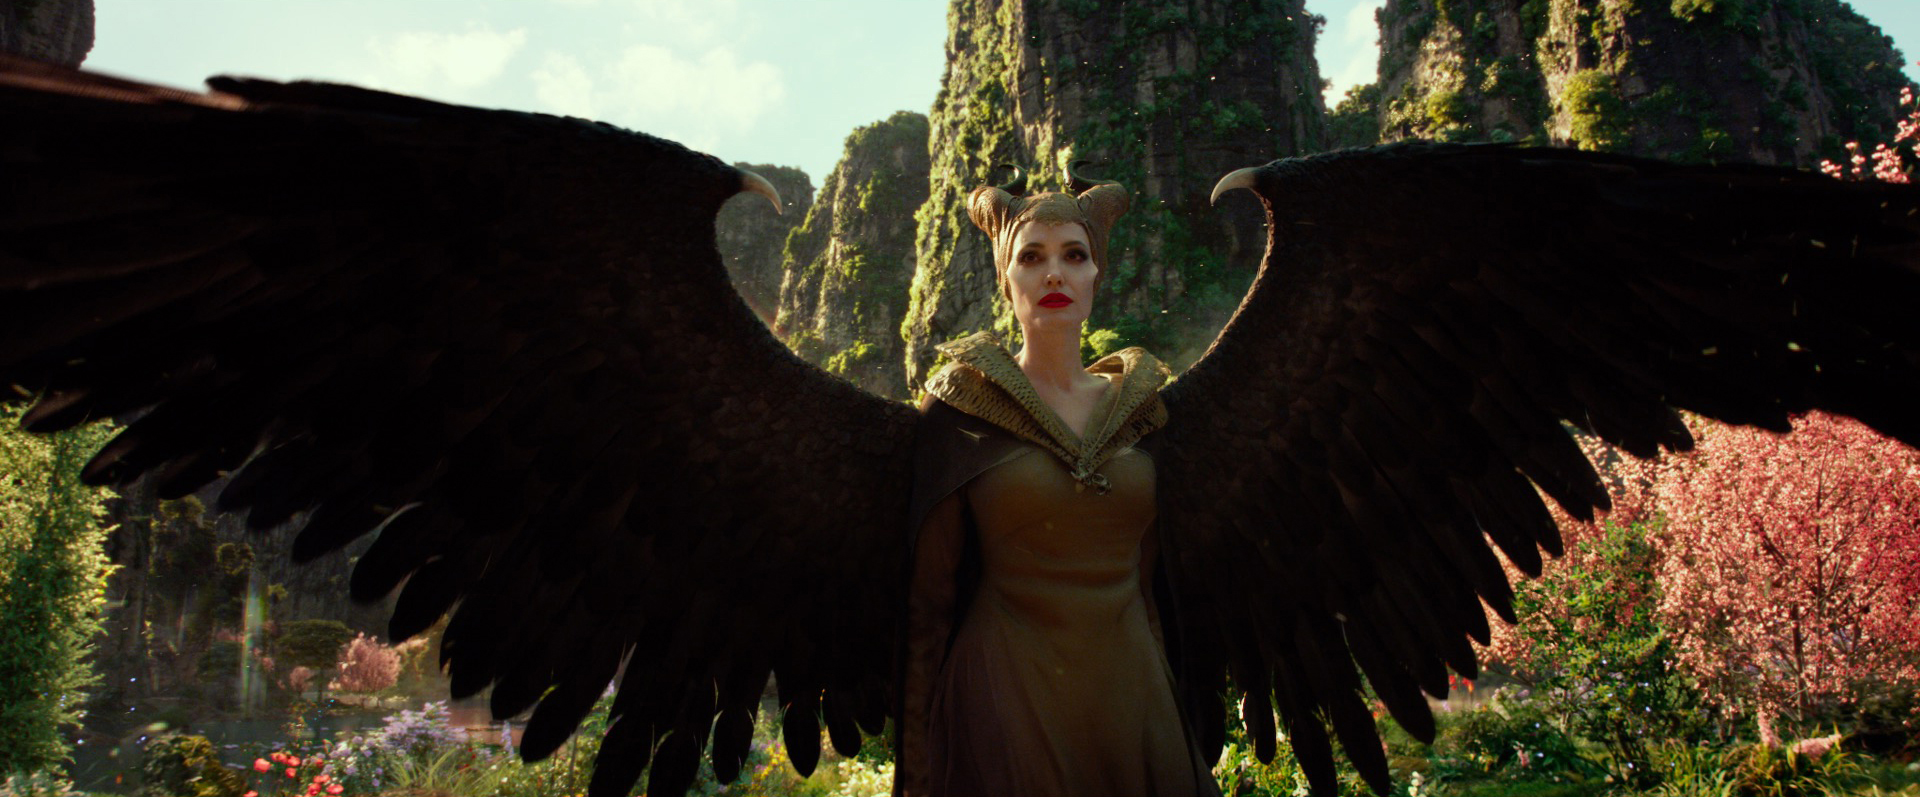 'Maleficent' is Less Than Magnificent as Annual Box Office Performance Continues to Slide